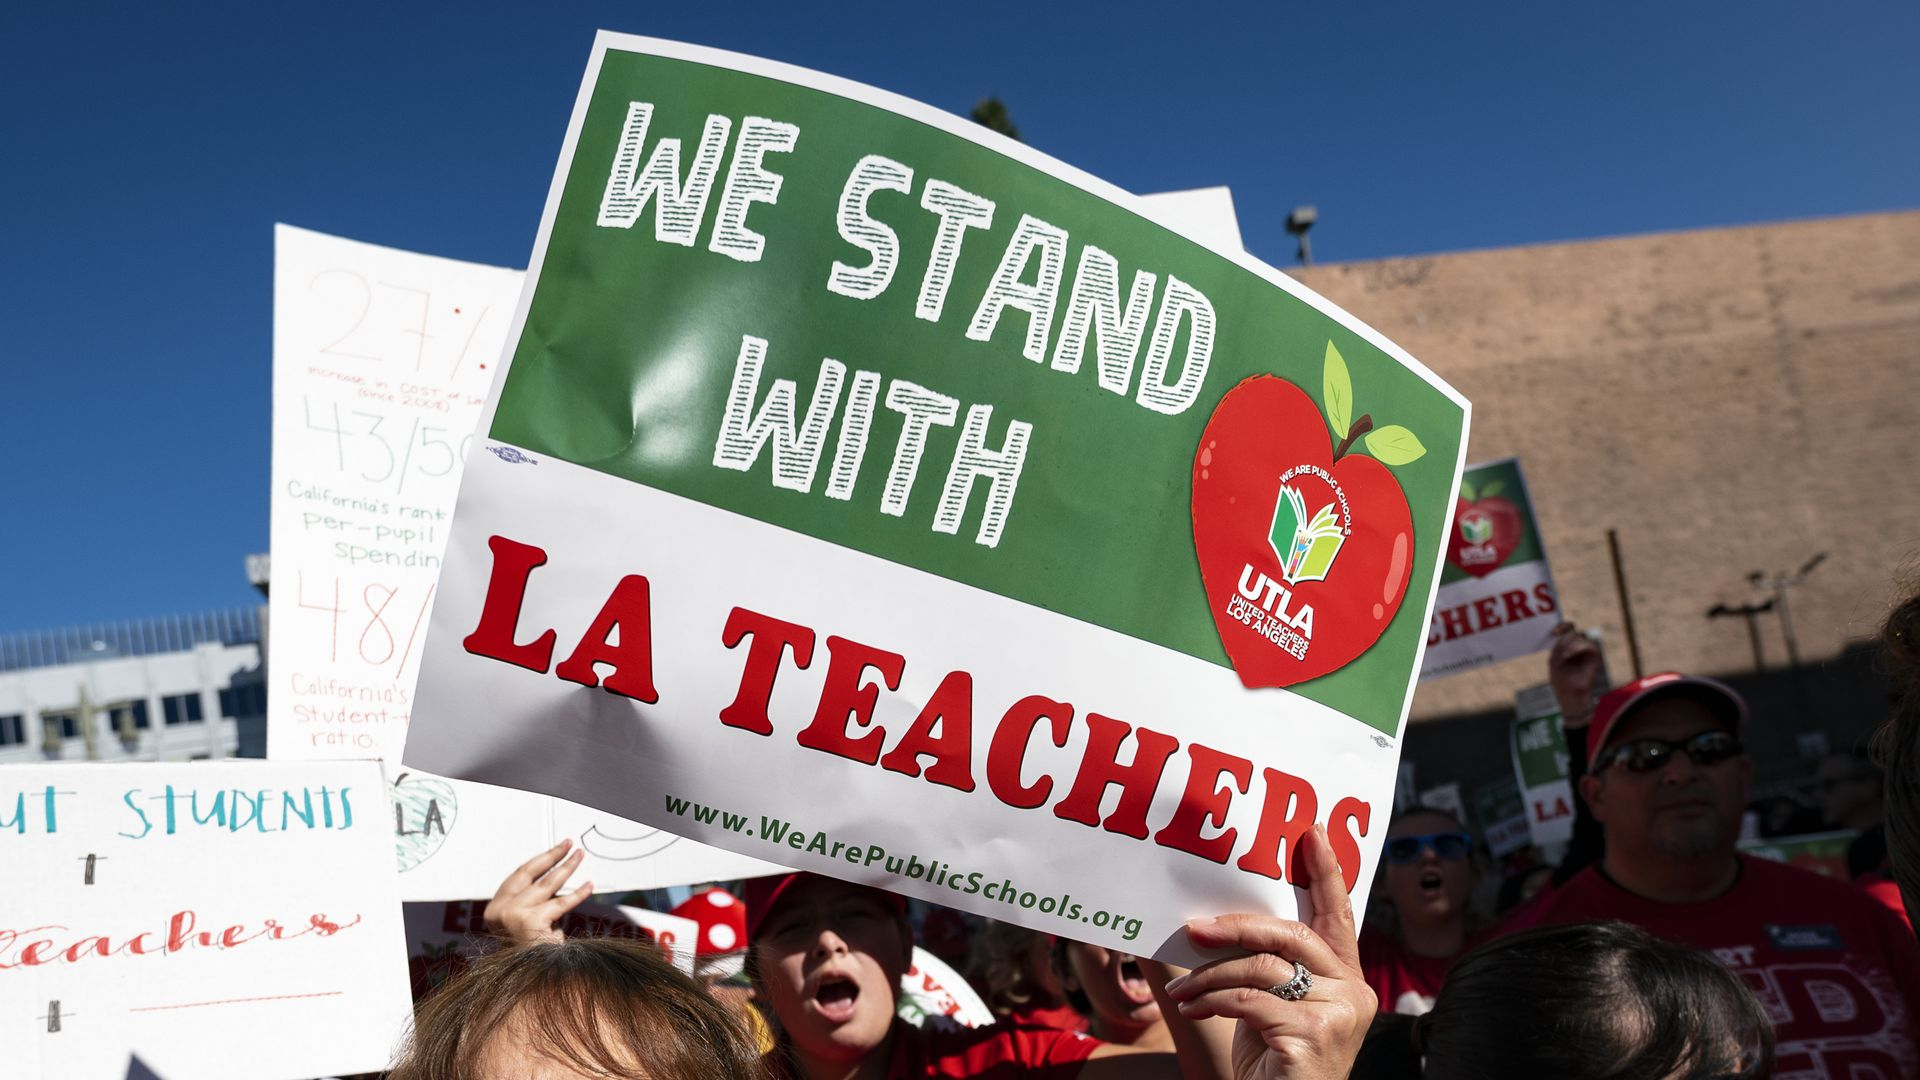 LA Teacher strike